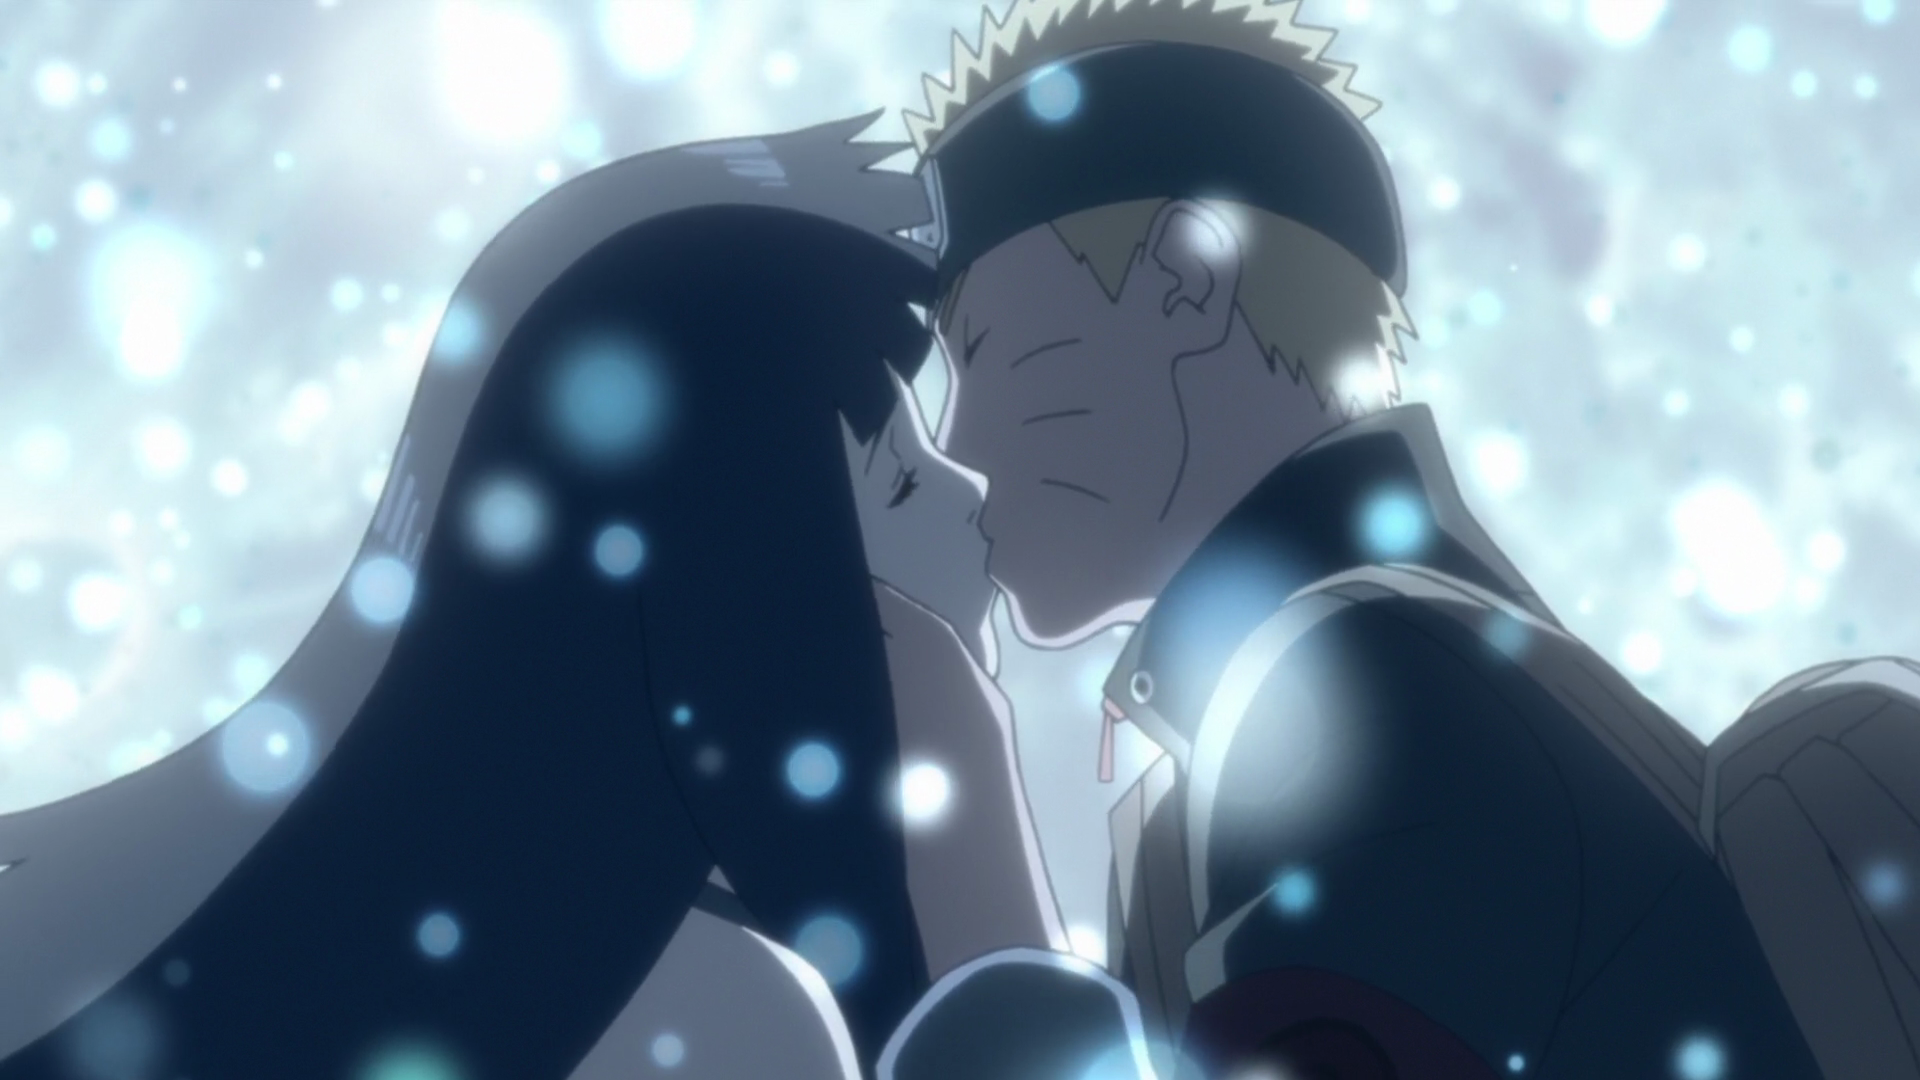 BORUTO: WILL NARUTO'S SON PAY THE PRICE OF THE NEGLIGENCE OF HIS LOVED ONES? – harryclark253